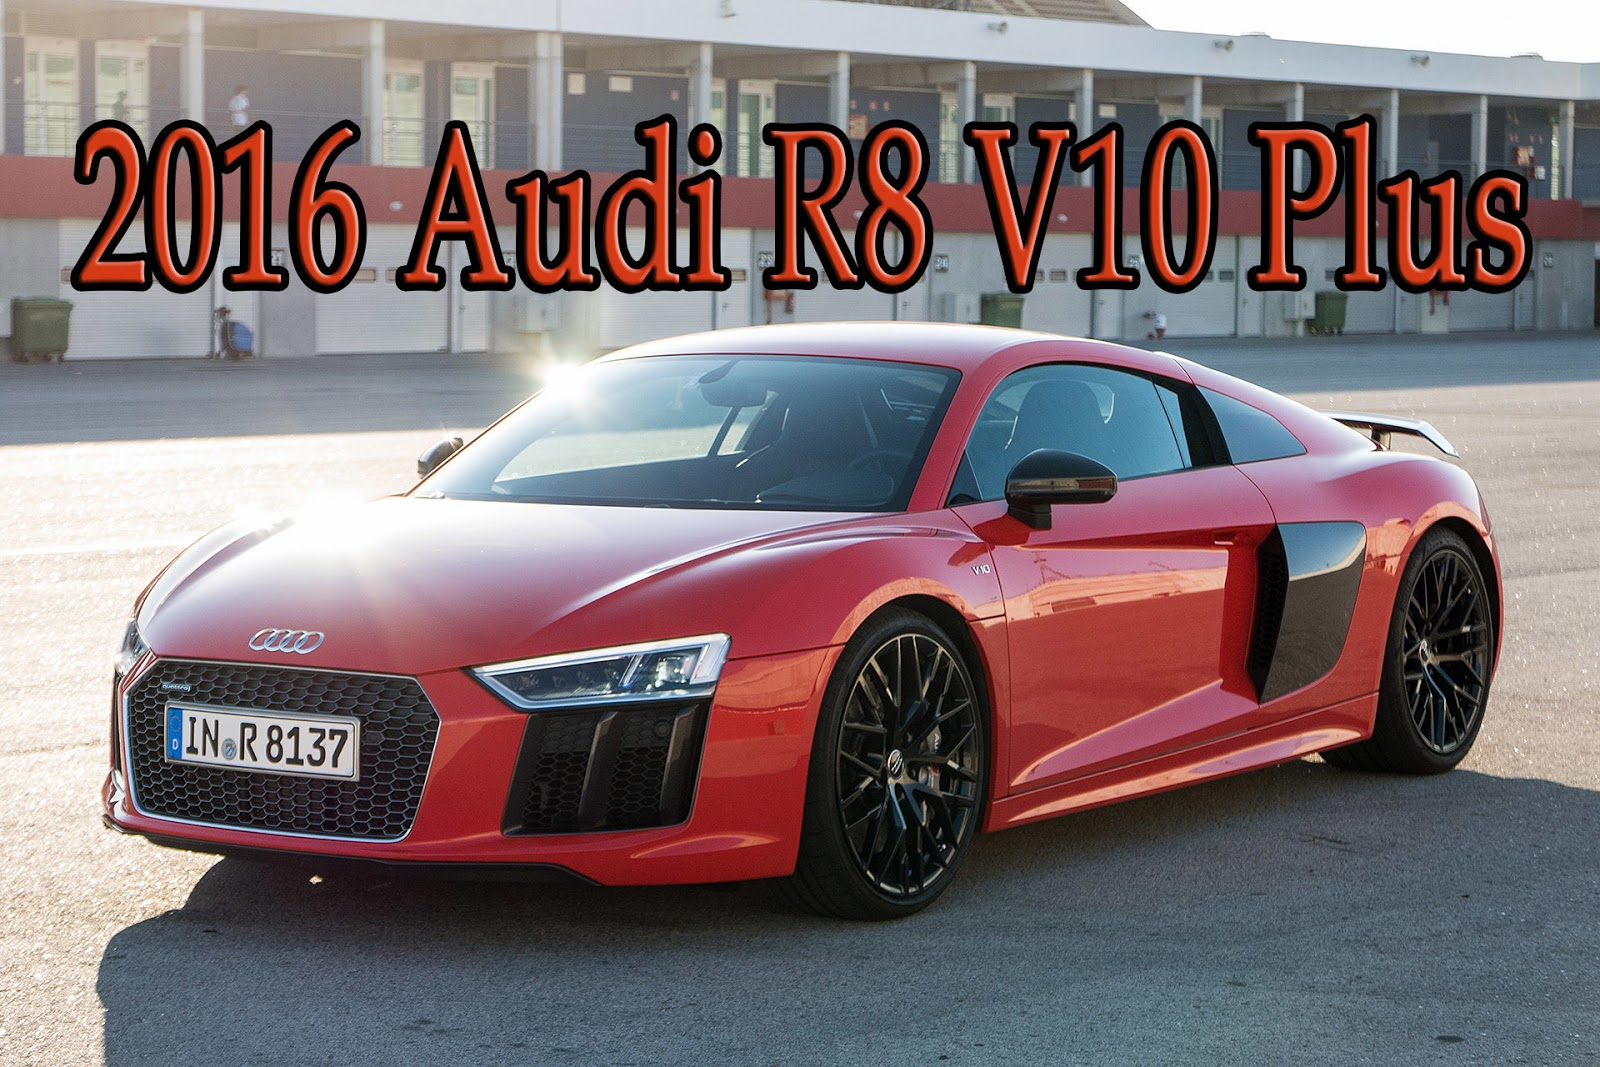 Audi R V Plus Top Speed Price In India Otomotif News - Audi car r8 price in india